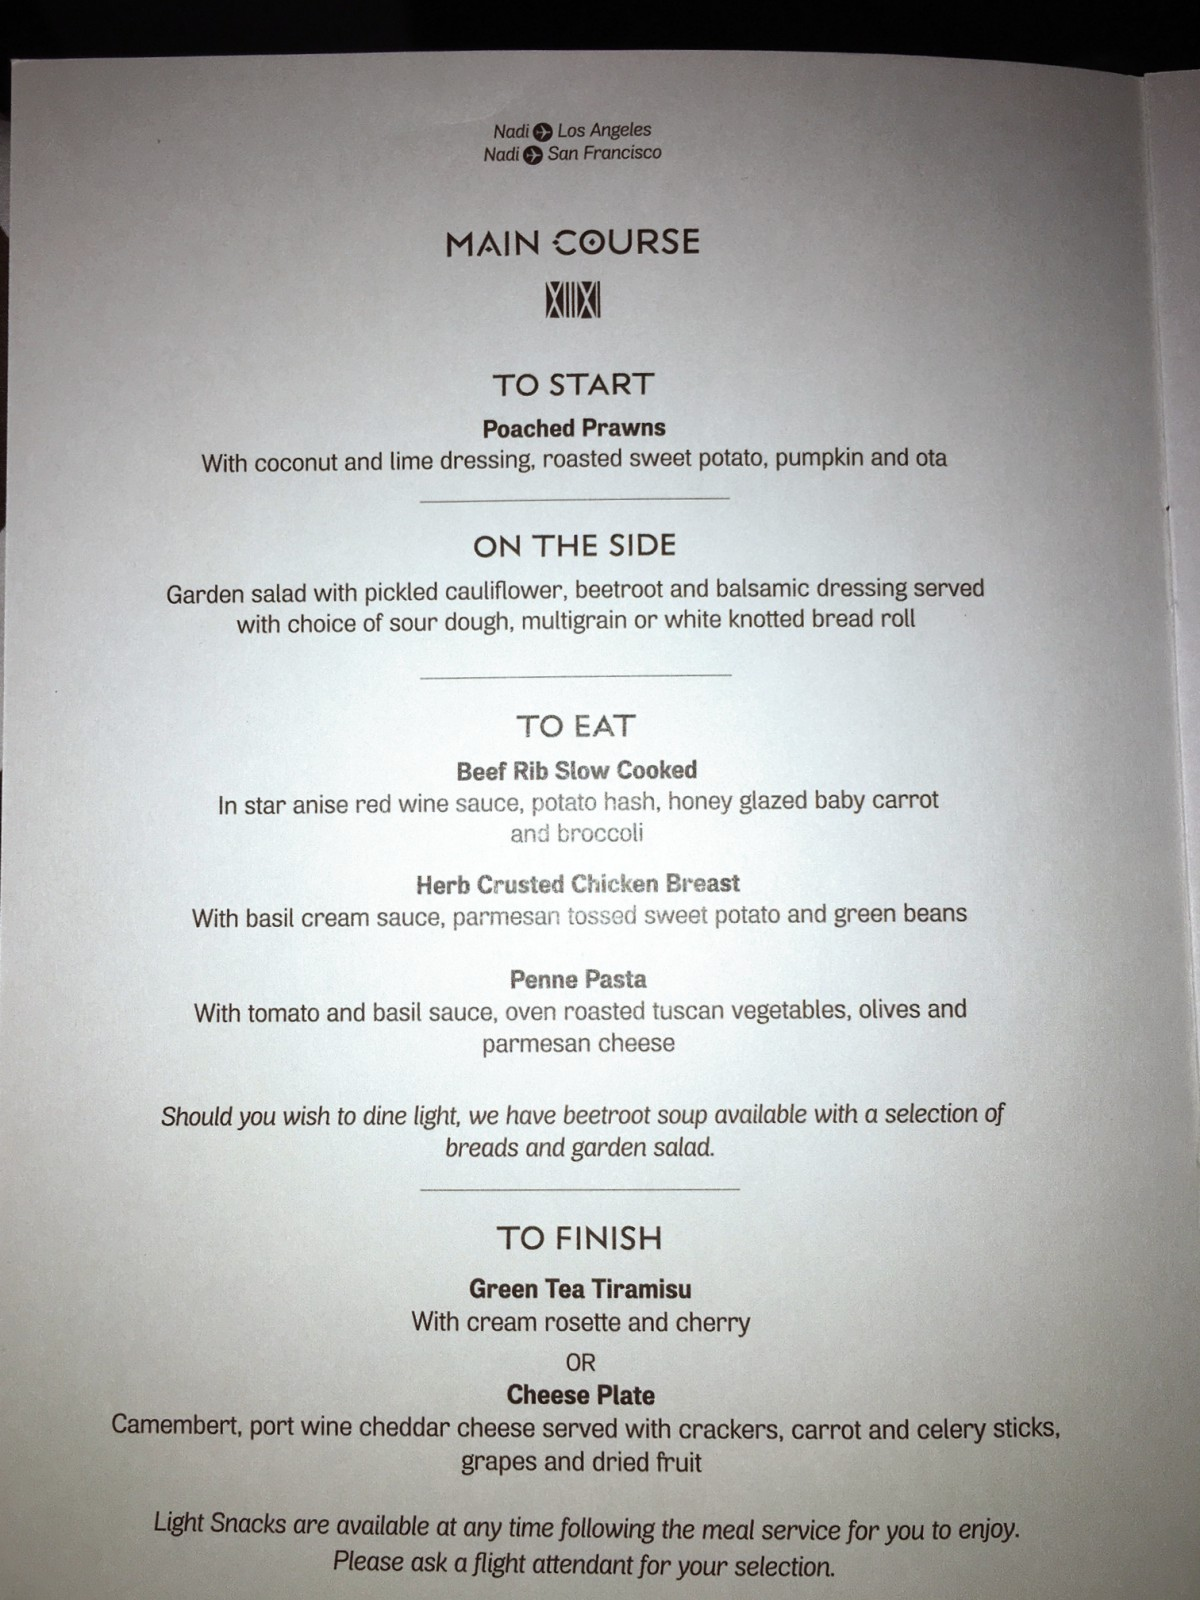 Fiji Airways Business Class Dinner Menu NAN-LAX